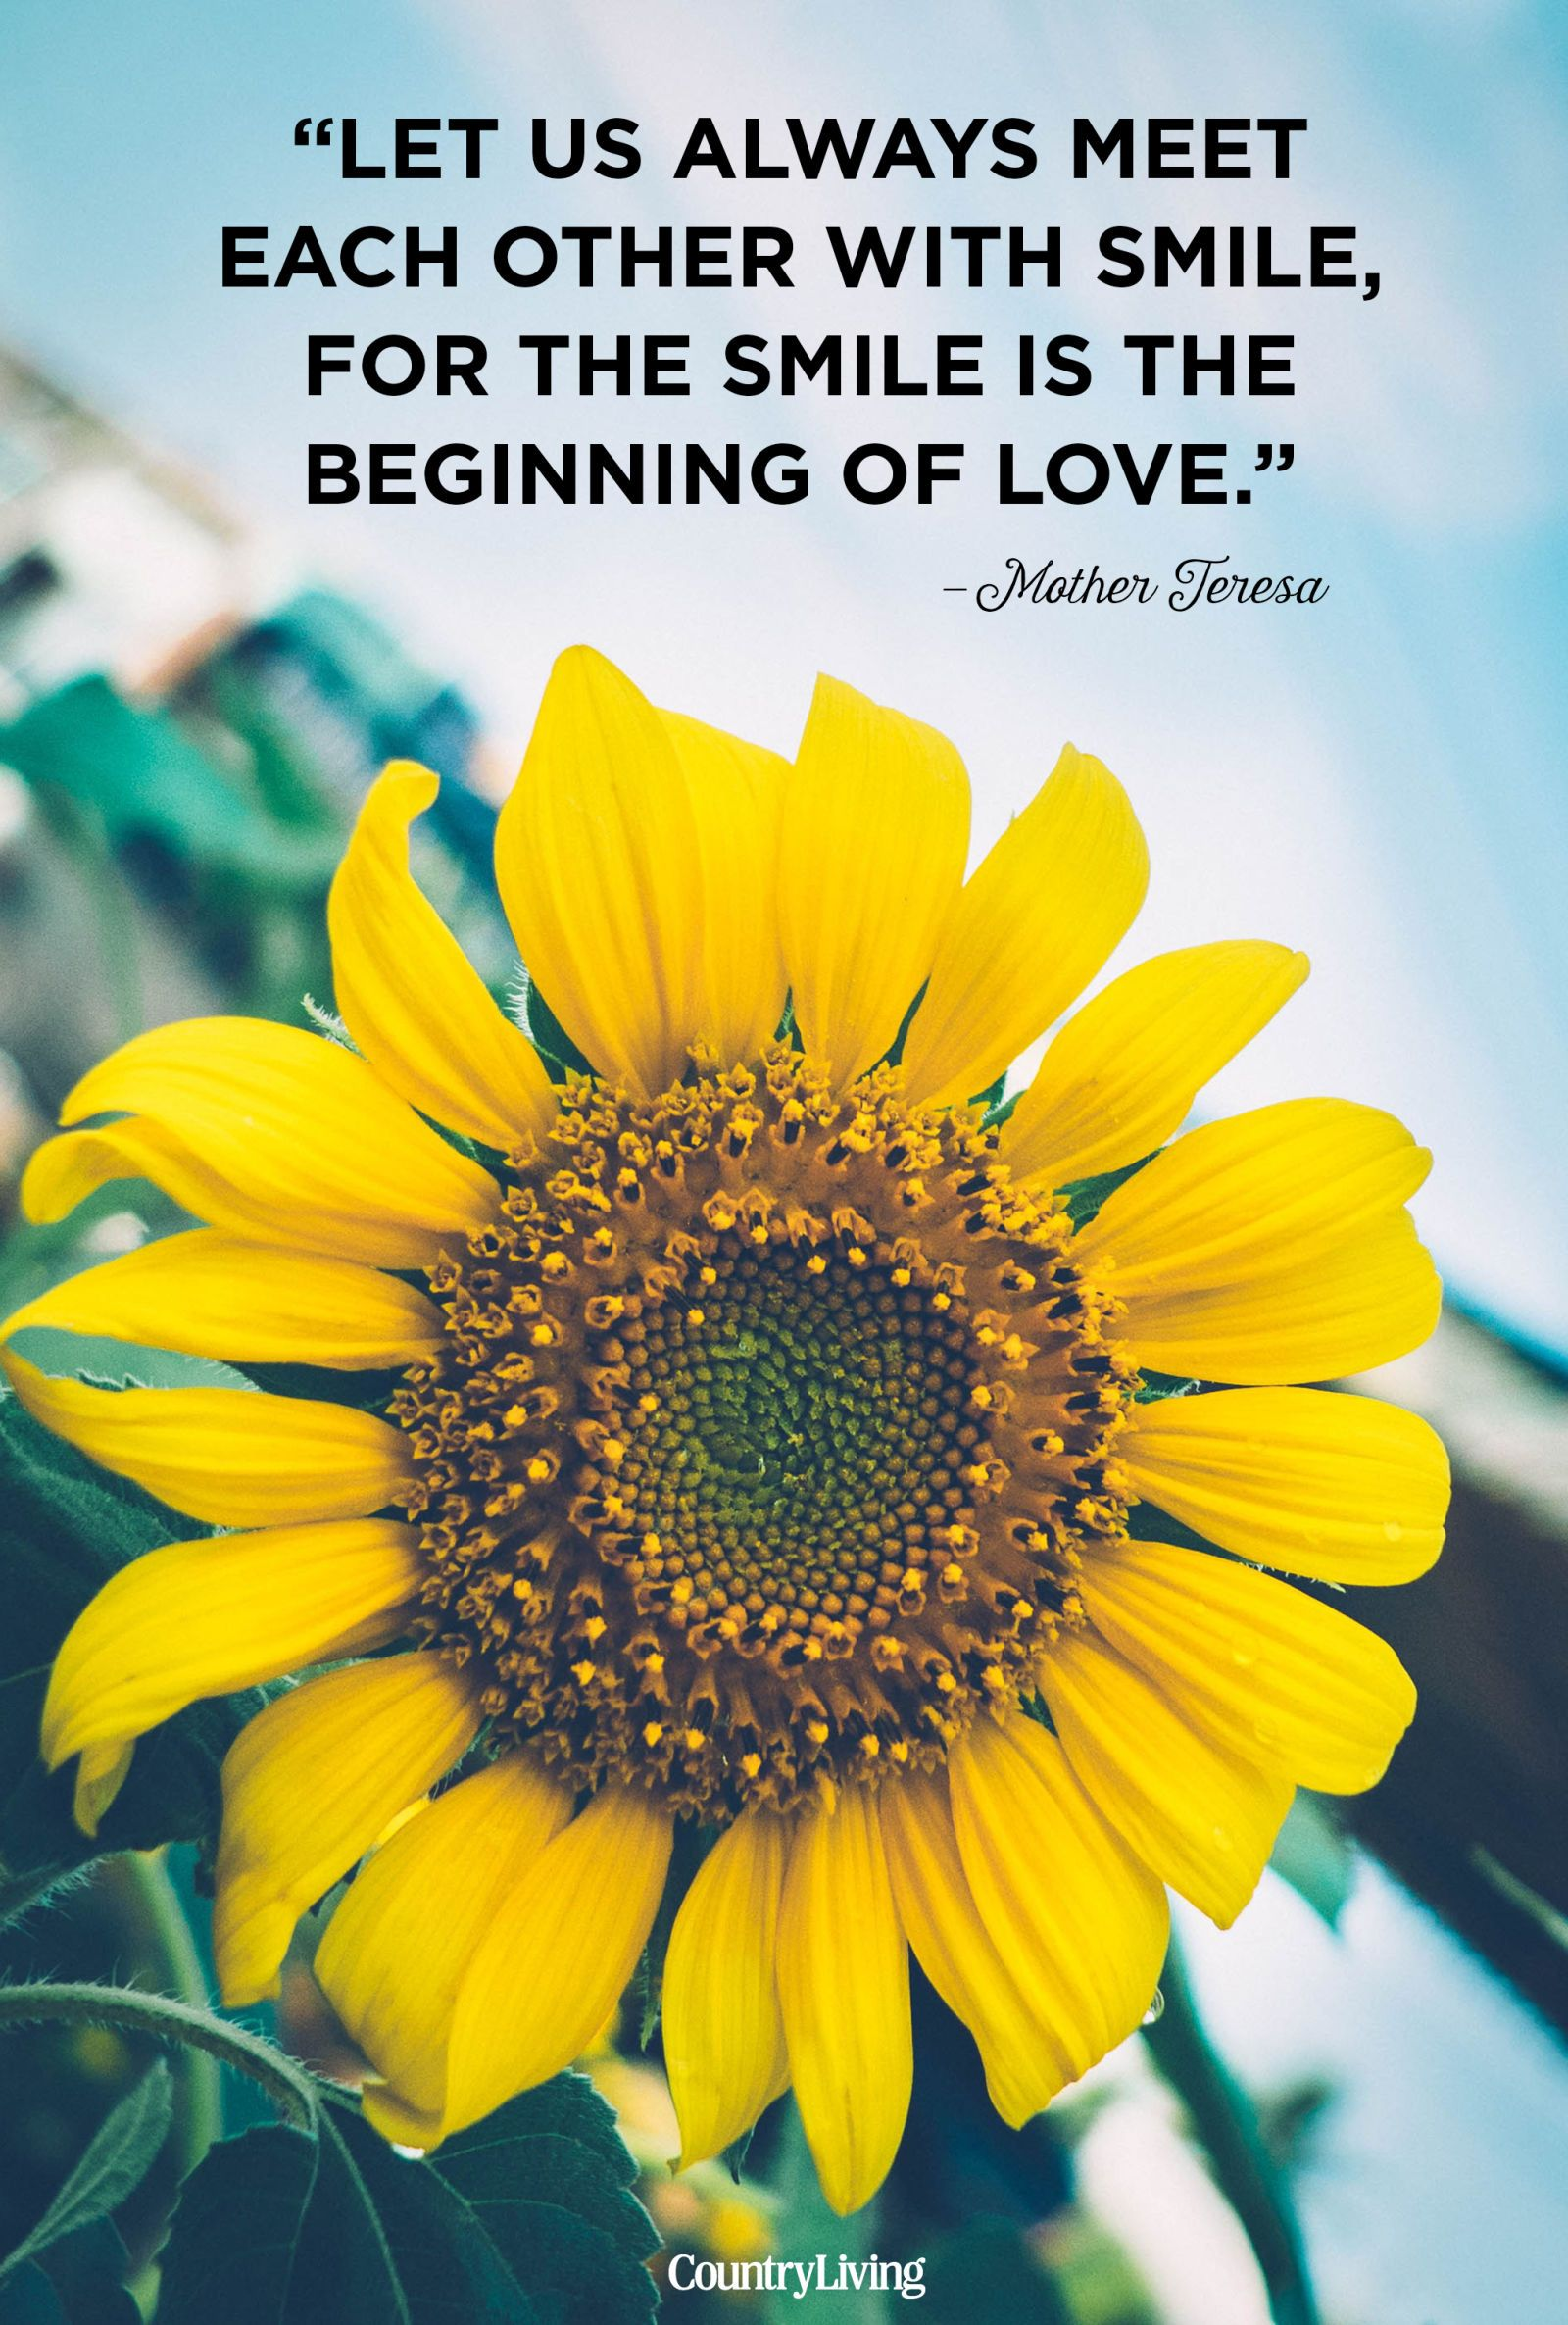 Image of: Benefit Fromit 12 Cute Quotes About Love You Need To Bookmark Country Living Magazine 12 Cute Love Quotes For Him And Her Short Relationship Quotes For